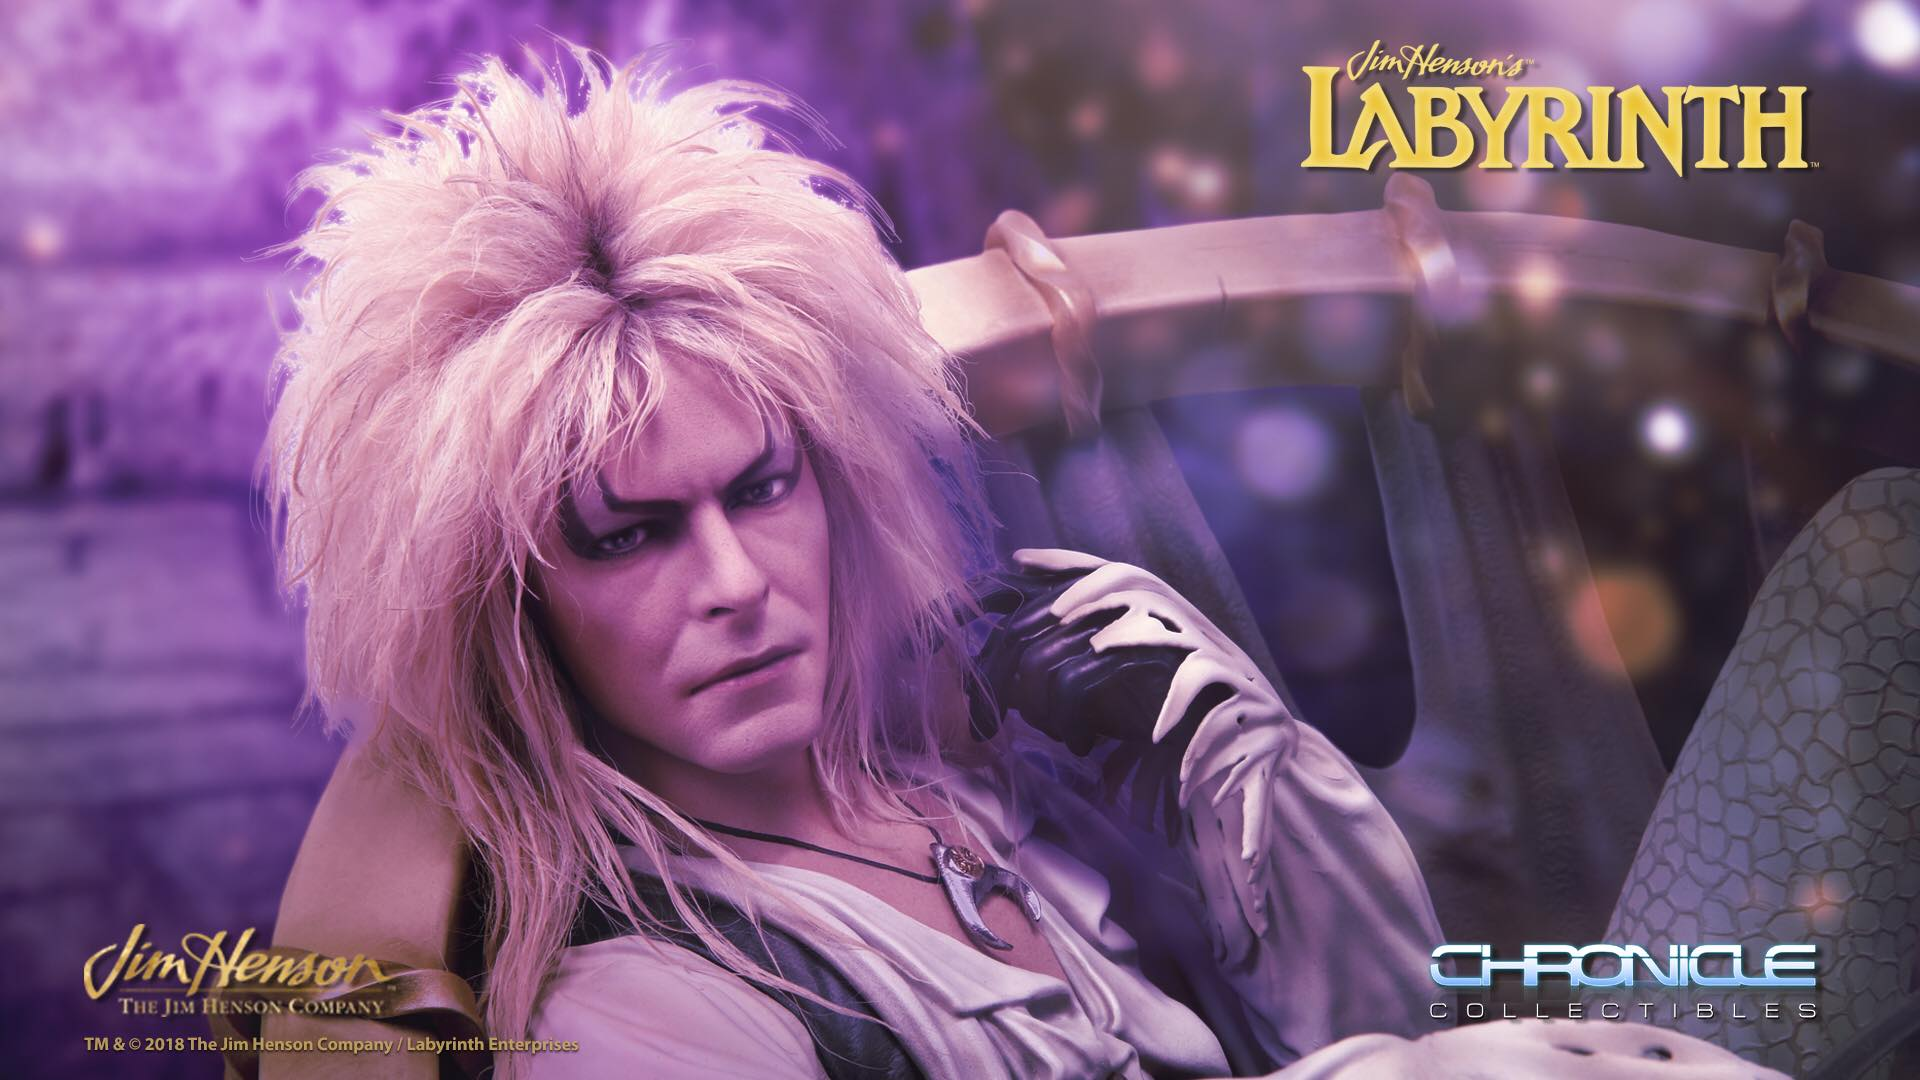 Pre-Order Chronicle Labyrinth Jareth on the Throne Statue